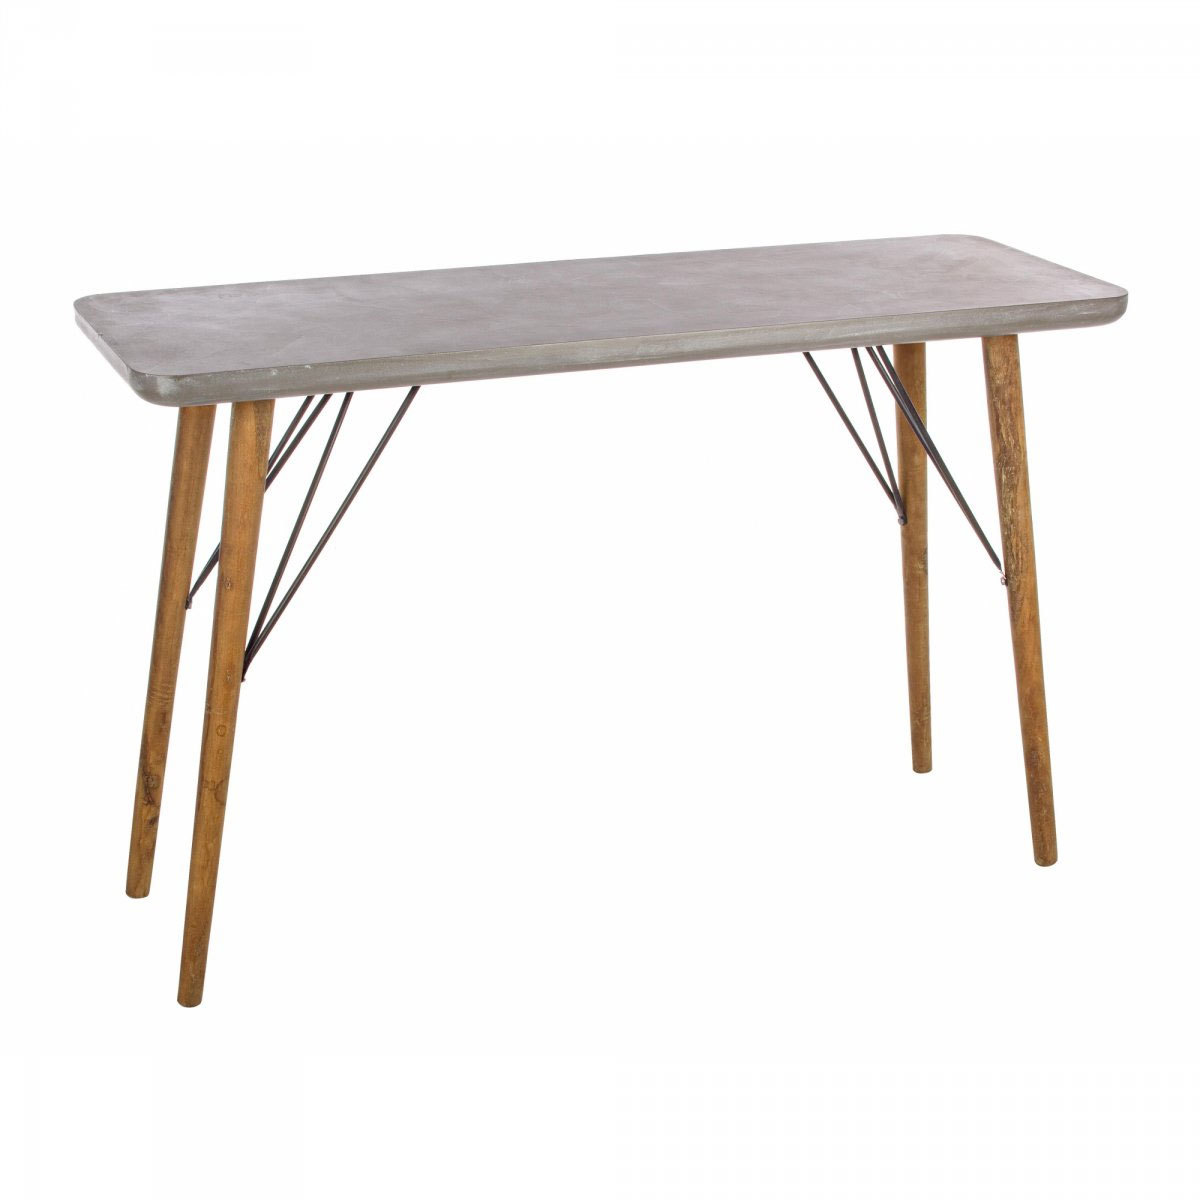 Photos 1: Bizzotto Fixed wood console l. 120 x 40 0740246